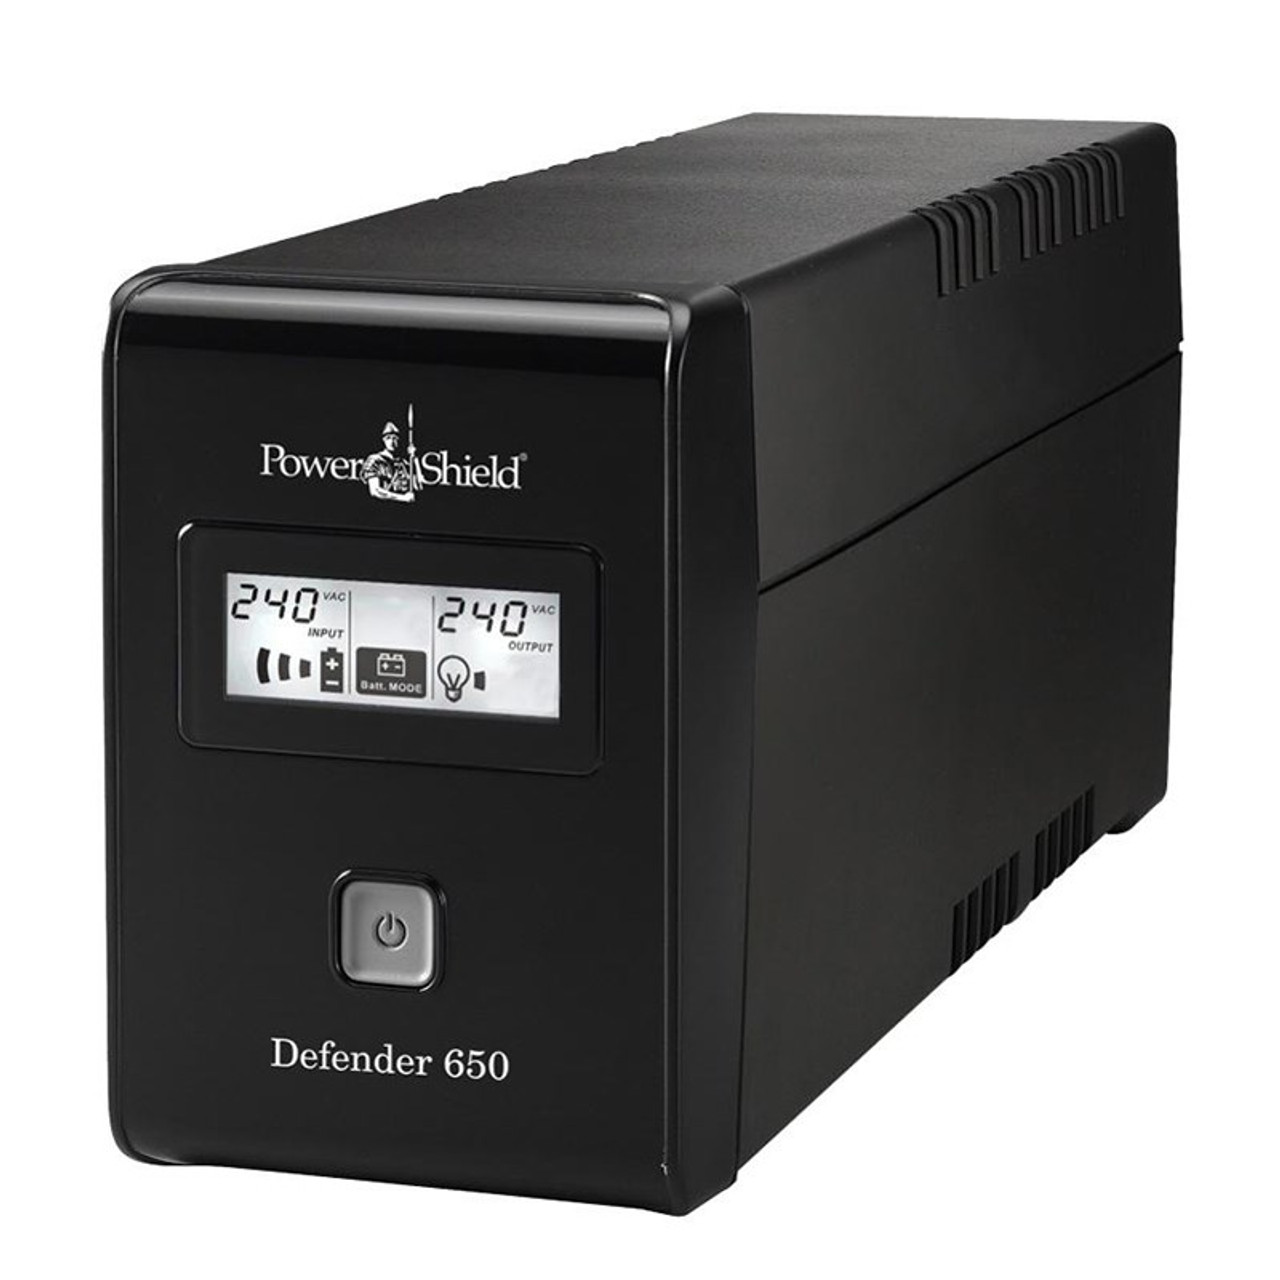 Image for PowerShield Defender Line Interactive UPS 650VA 390W AVR Australian Outlets CX Computer Superstore